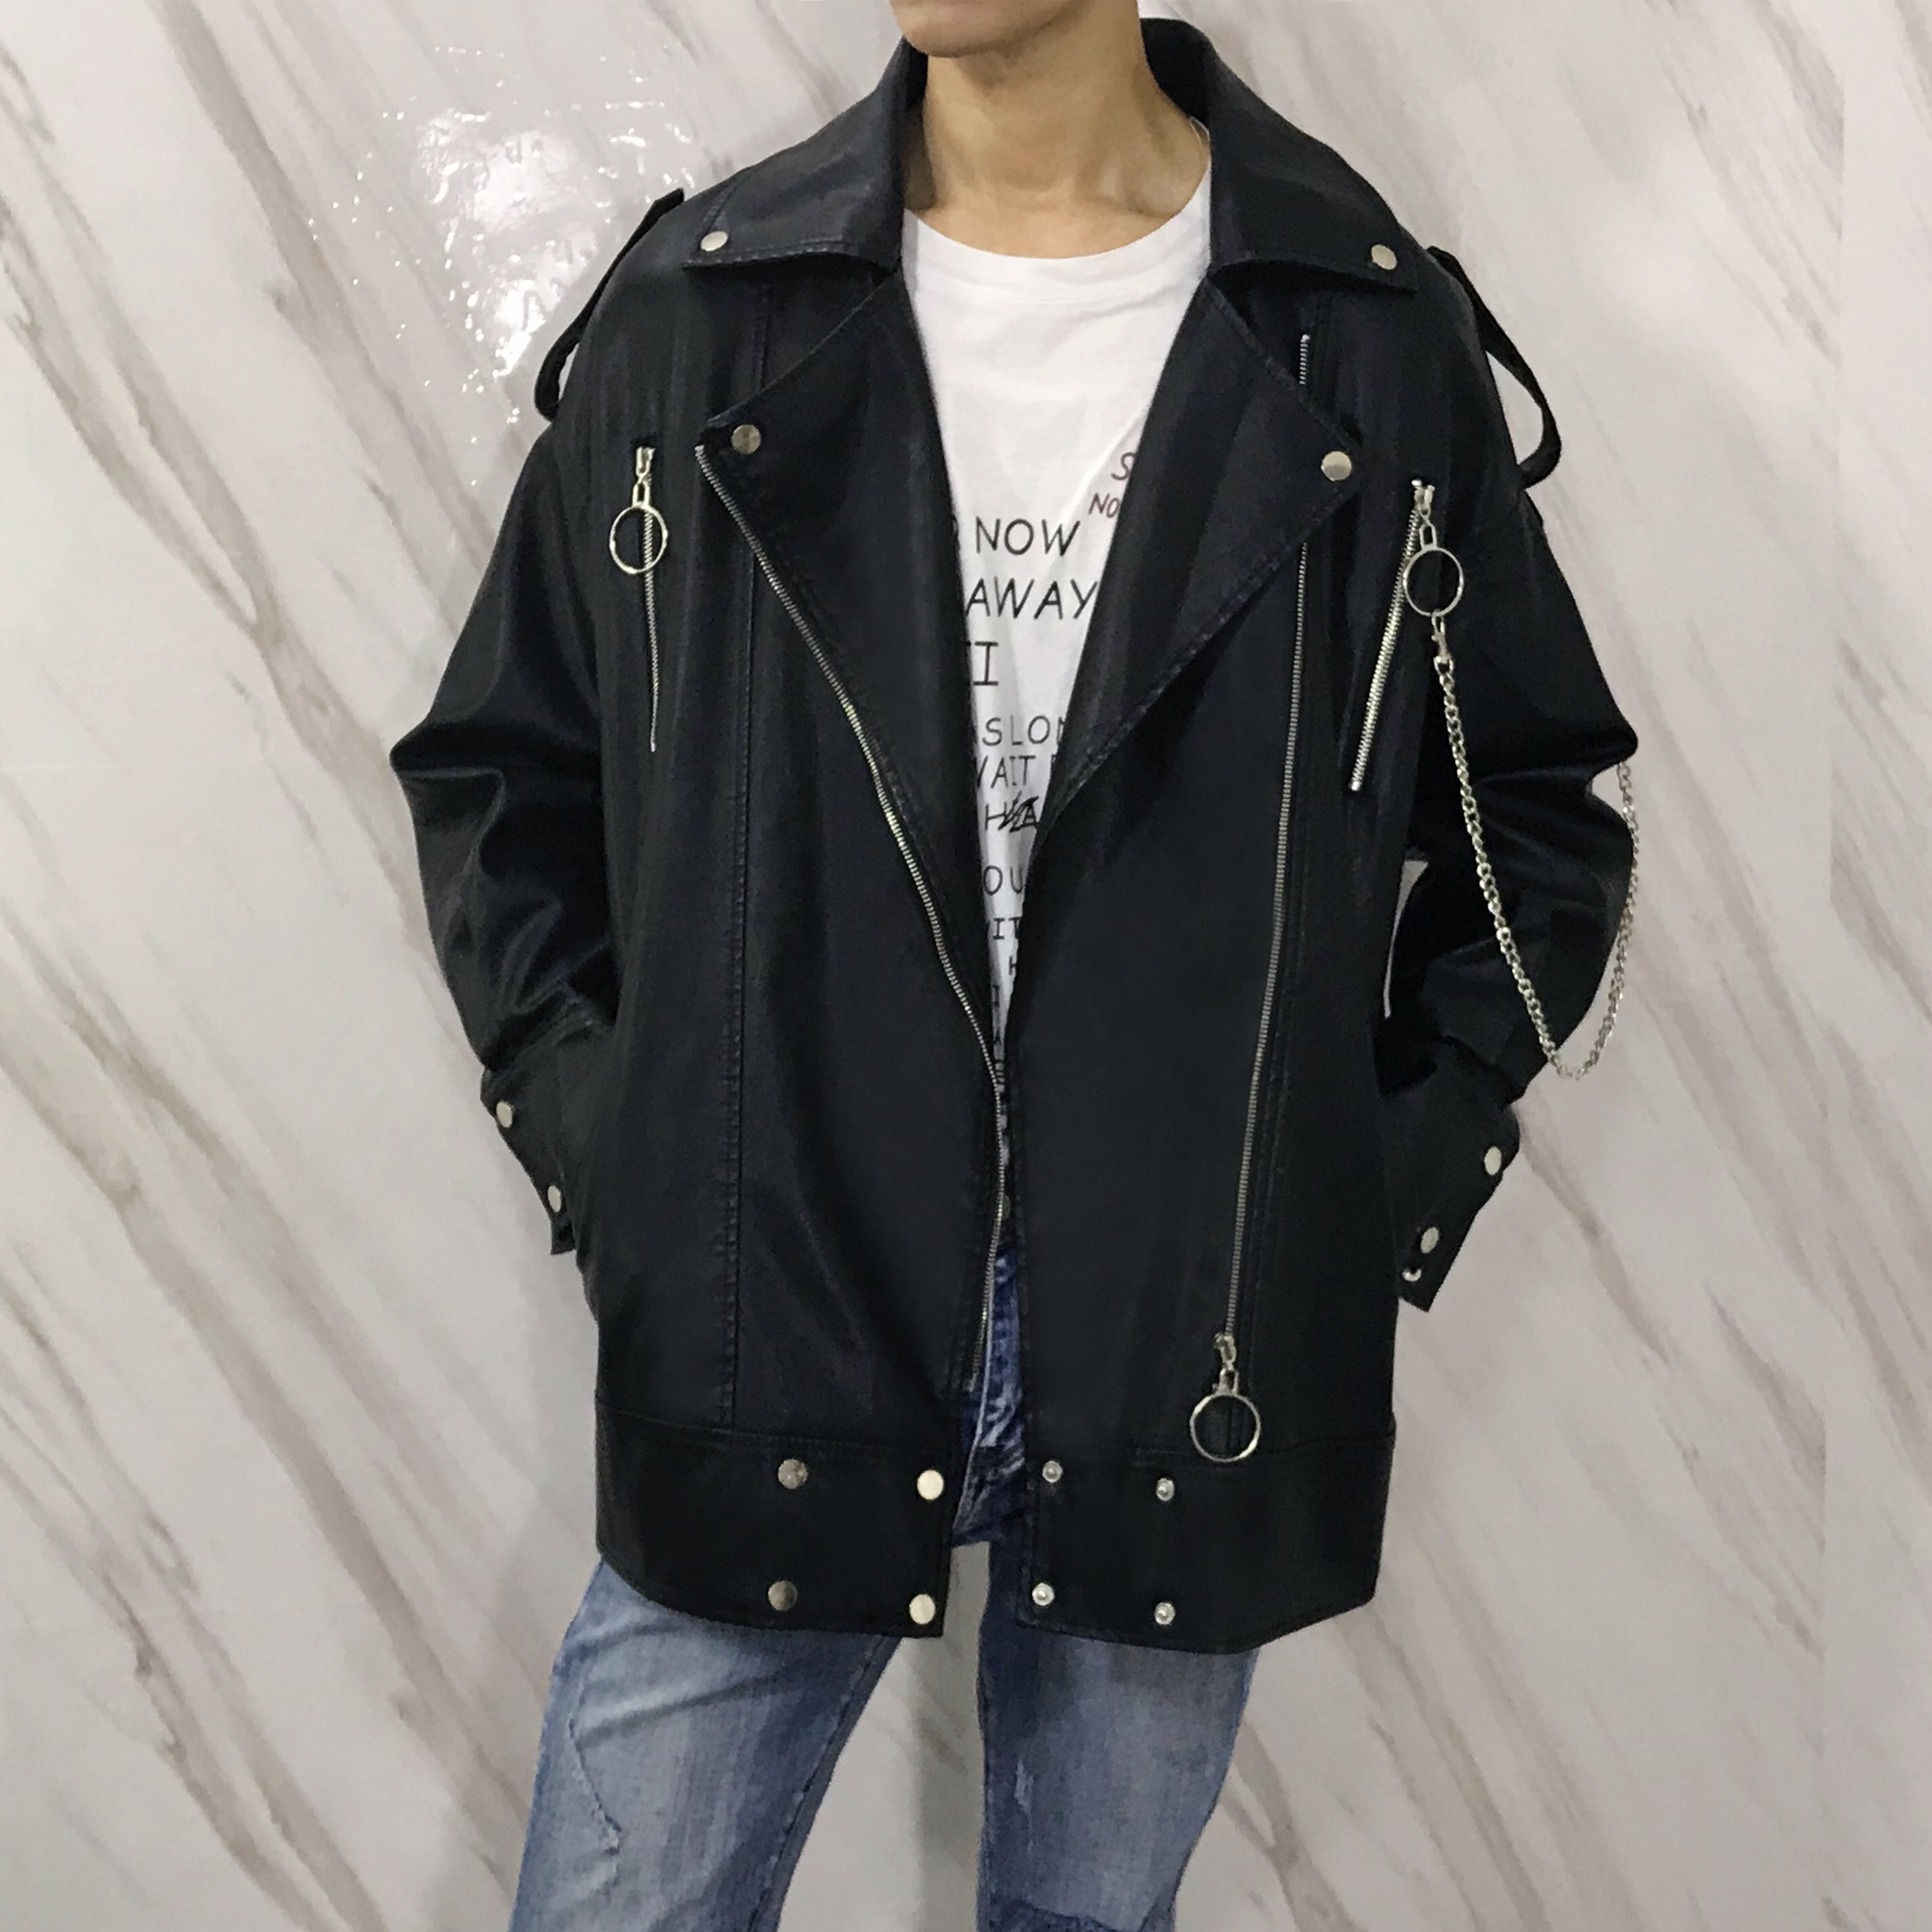 Spring new Korean fashion handsome locomotive leather coat medium length loose and slim large jacket young man